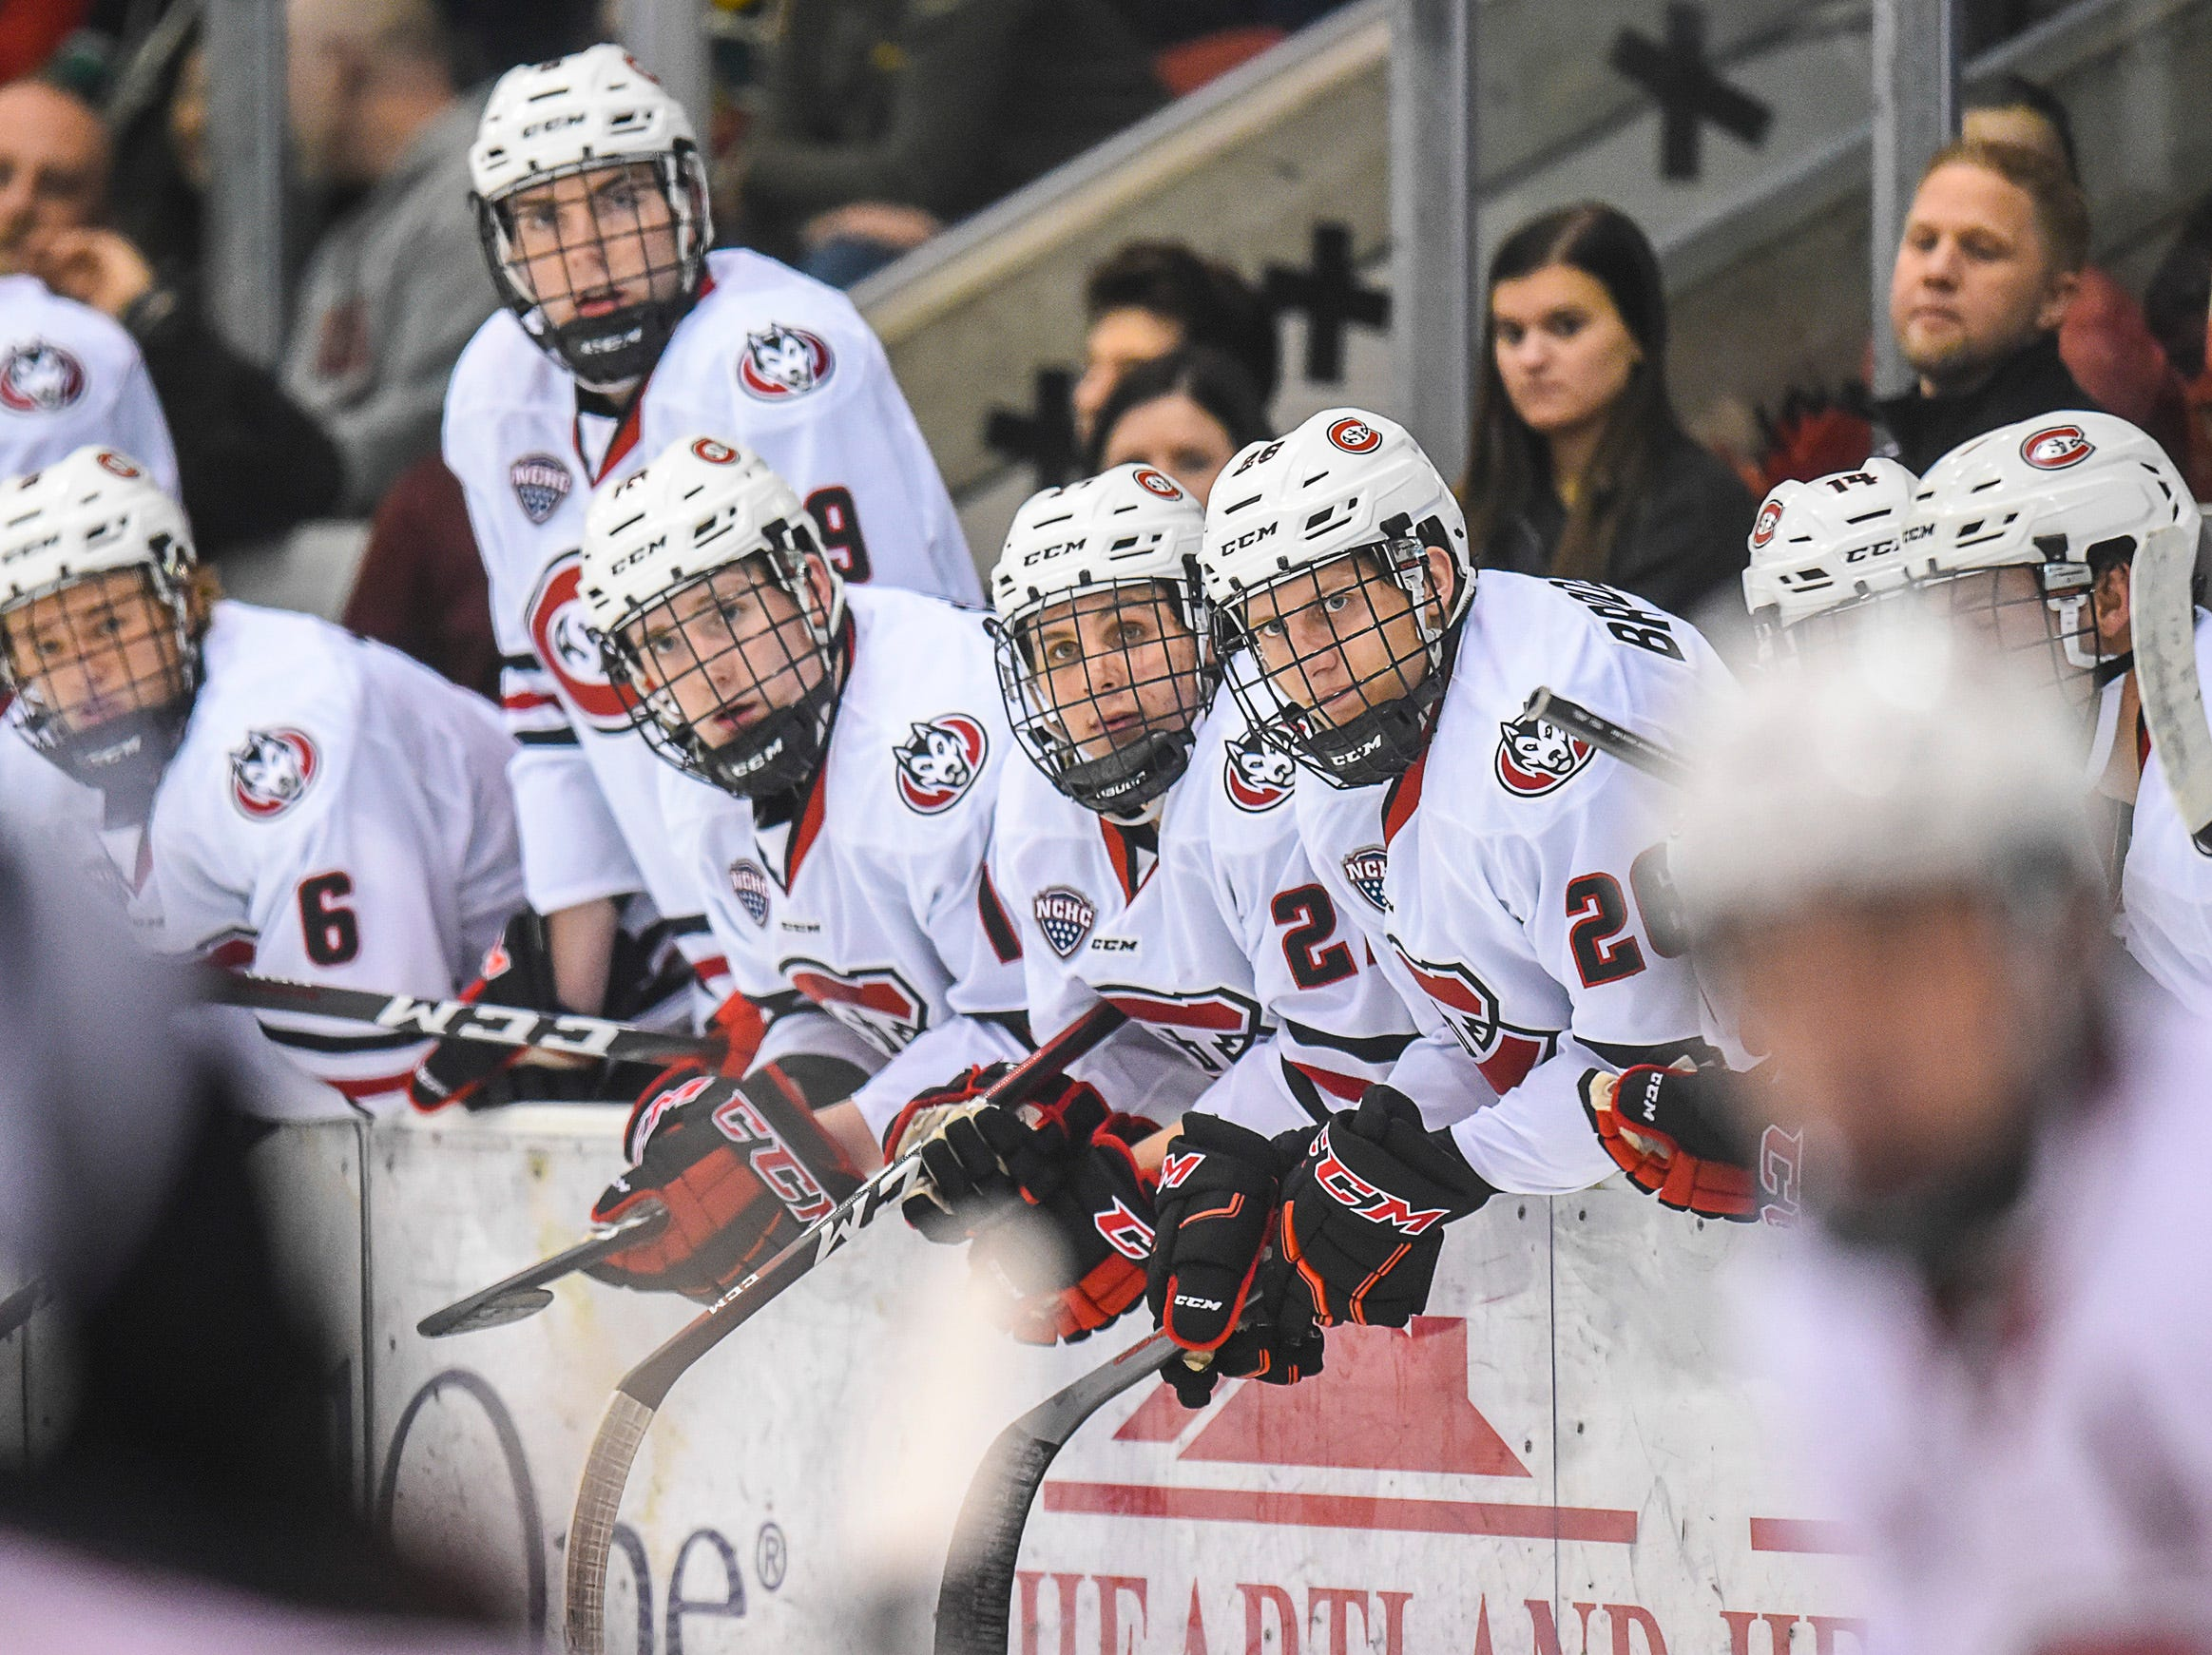 St. Cloud State players watch the action from the bench against the University of Nebraska-Omaha during the second period Friday, Dec. 7, at the Herb Brooks National Hockey Center.